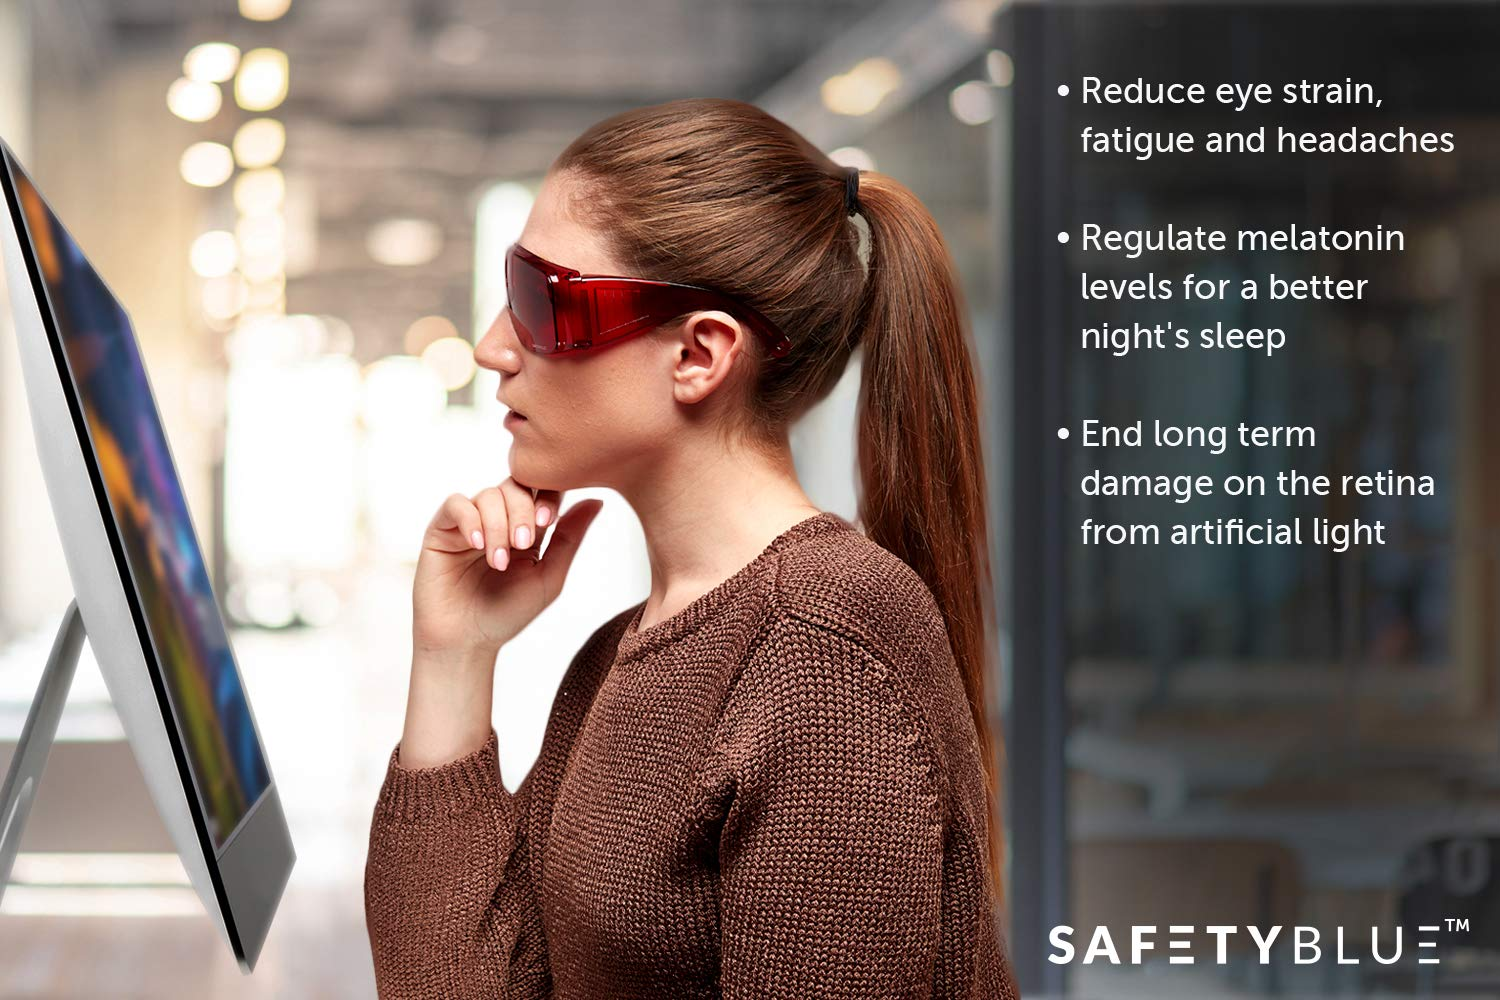 Sleep Savior™ Fitover Glasses - Anti-Blue & Green Blocking Glasses | Fit Over Most Prescription Eyeglasses | Better Night Sleep & Reduce Eyestrain & Insomnia | for Women and Men by SafetyBlue (Image #4)